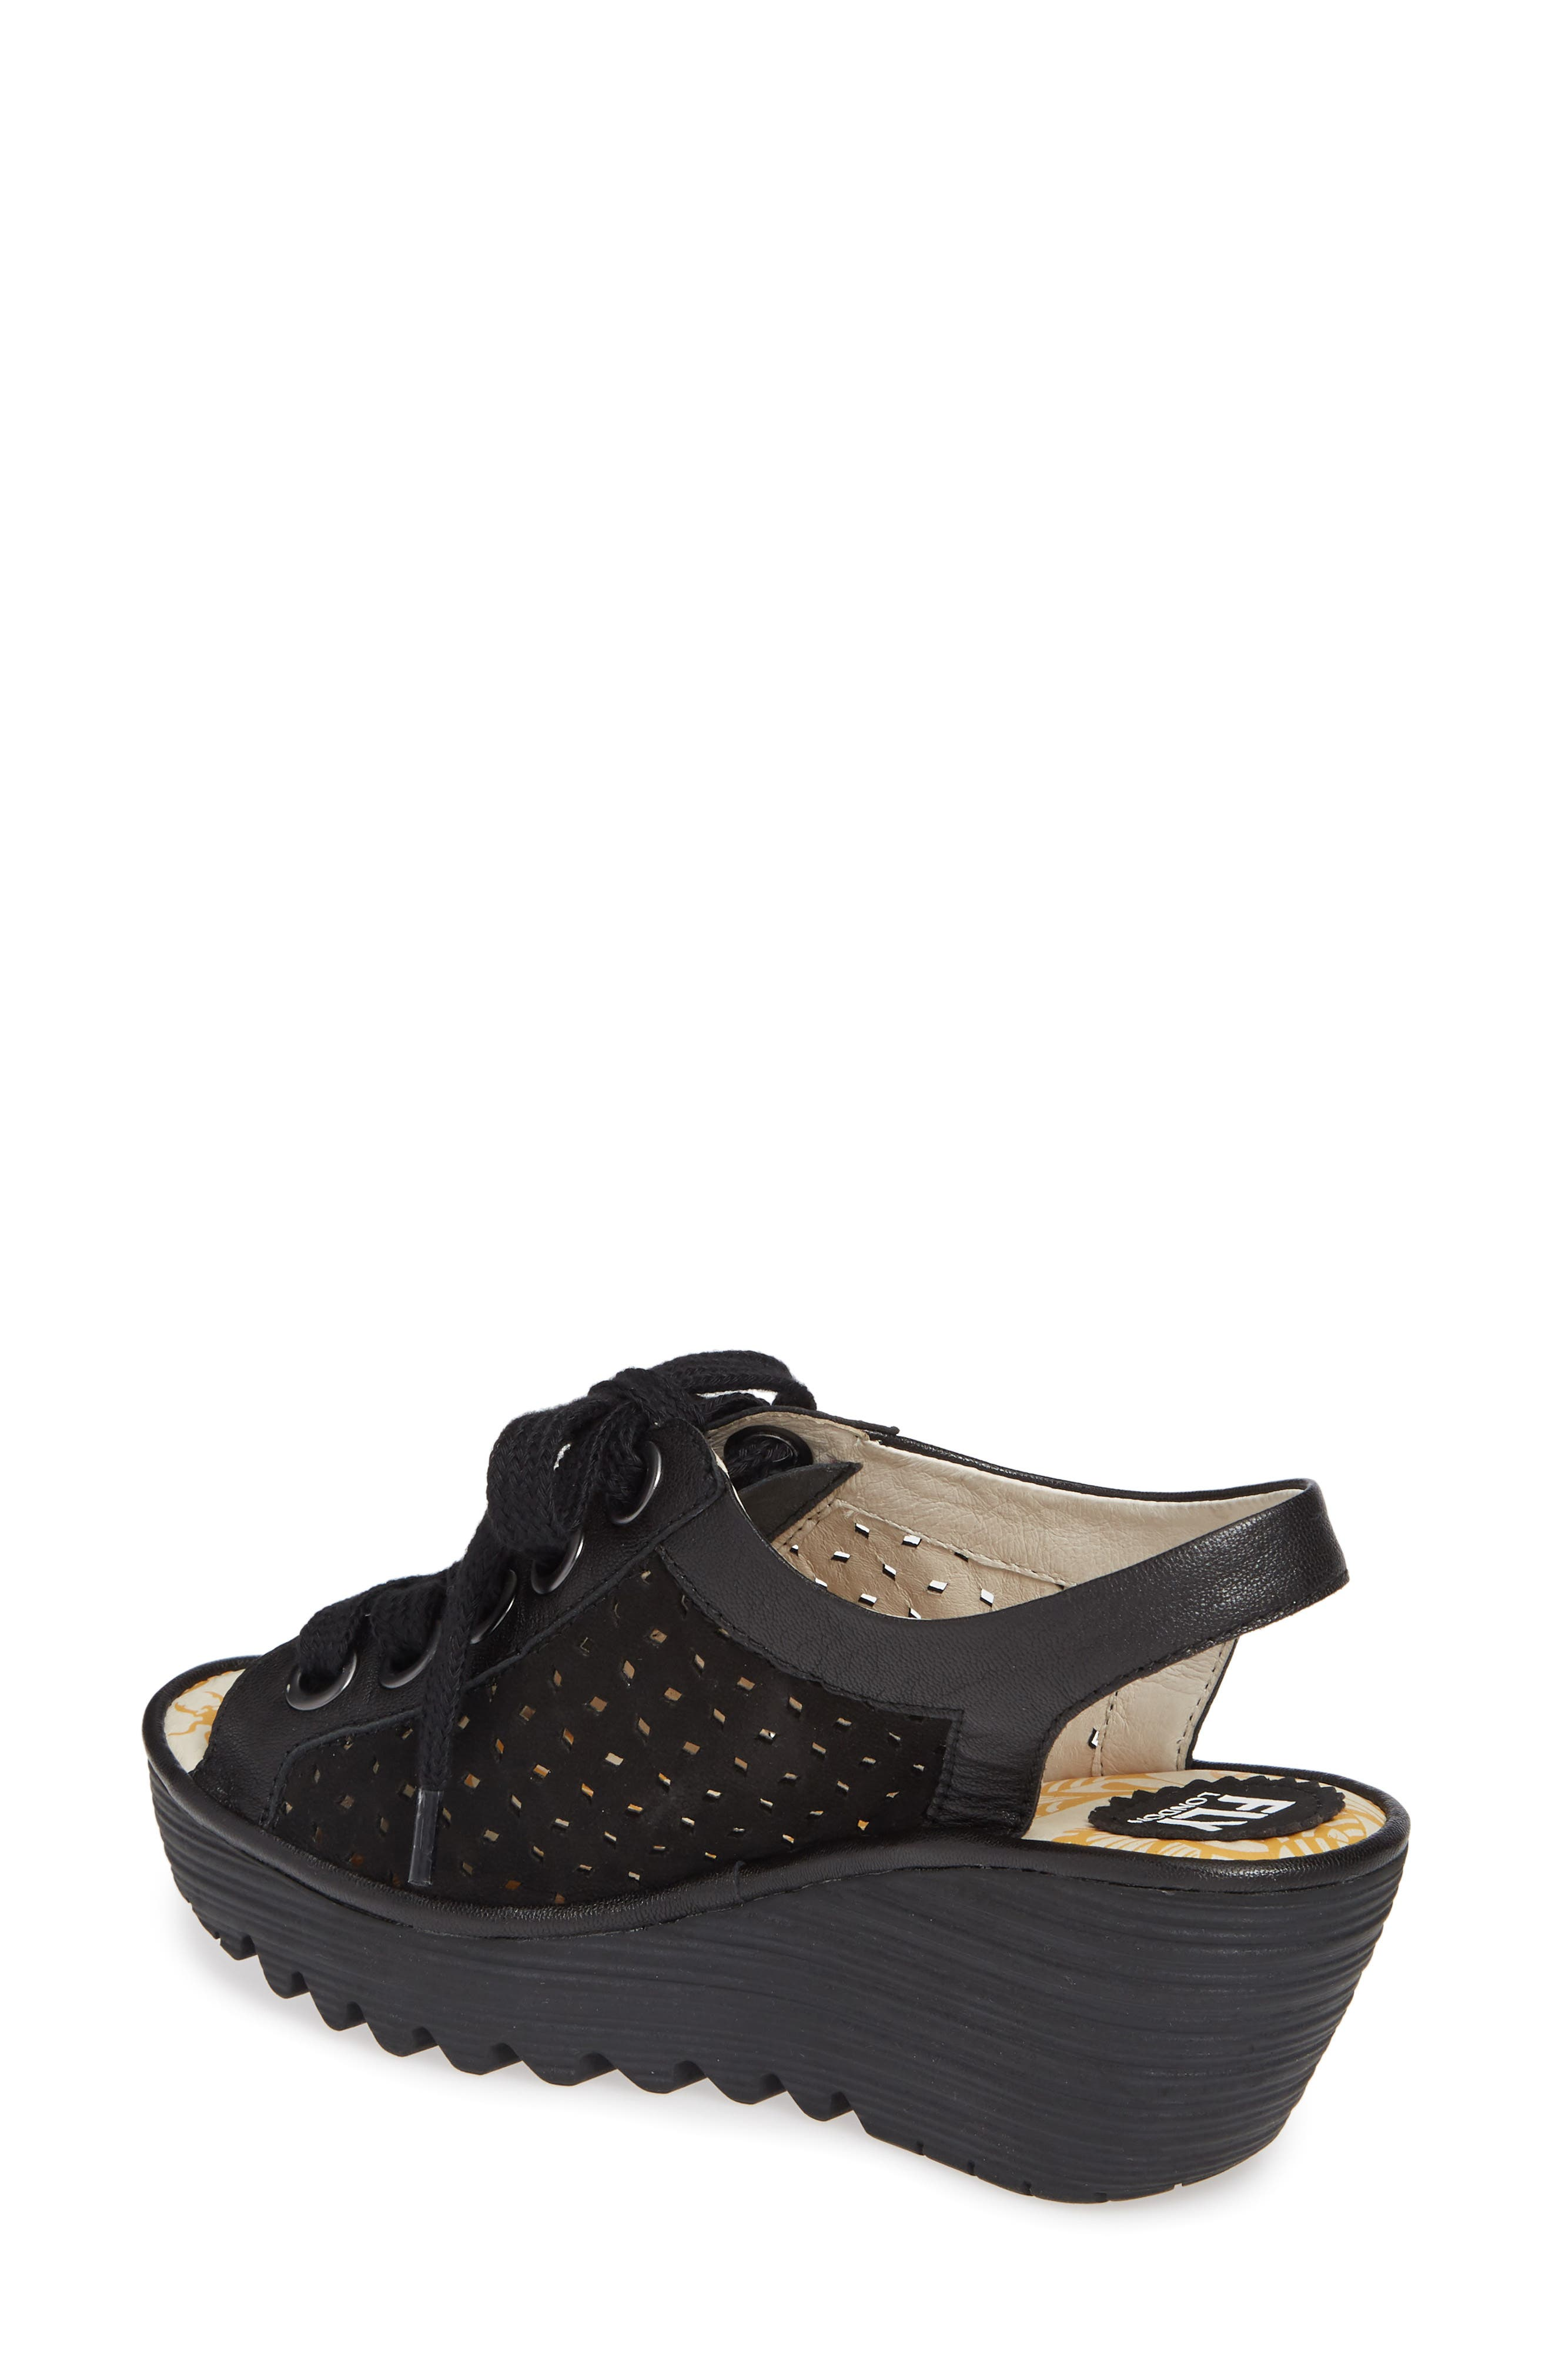 FLY LONDON, Yorl Wedge Sandal, Alternate thumbnail 2, color, BLACK LEATHER